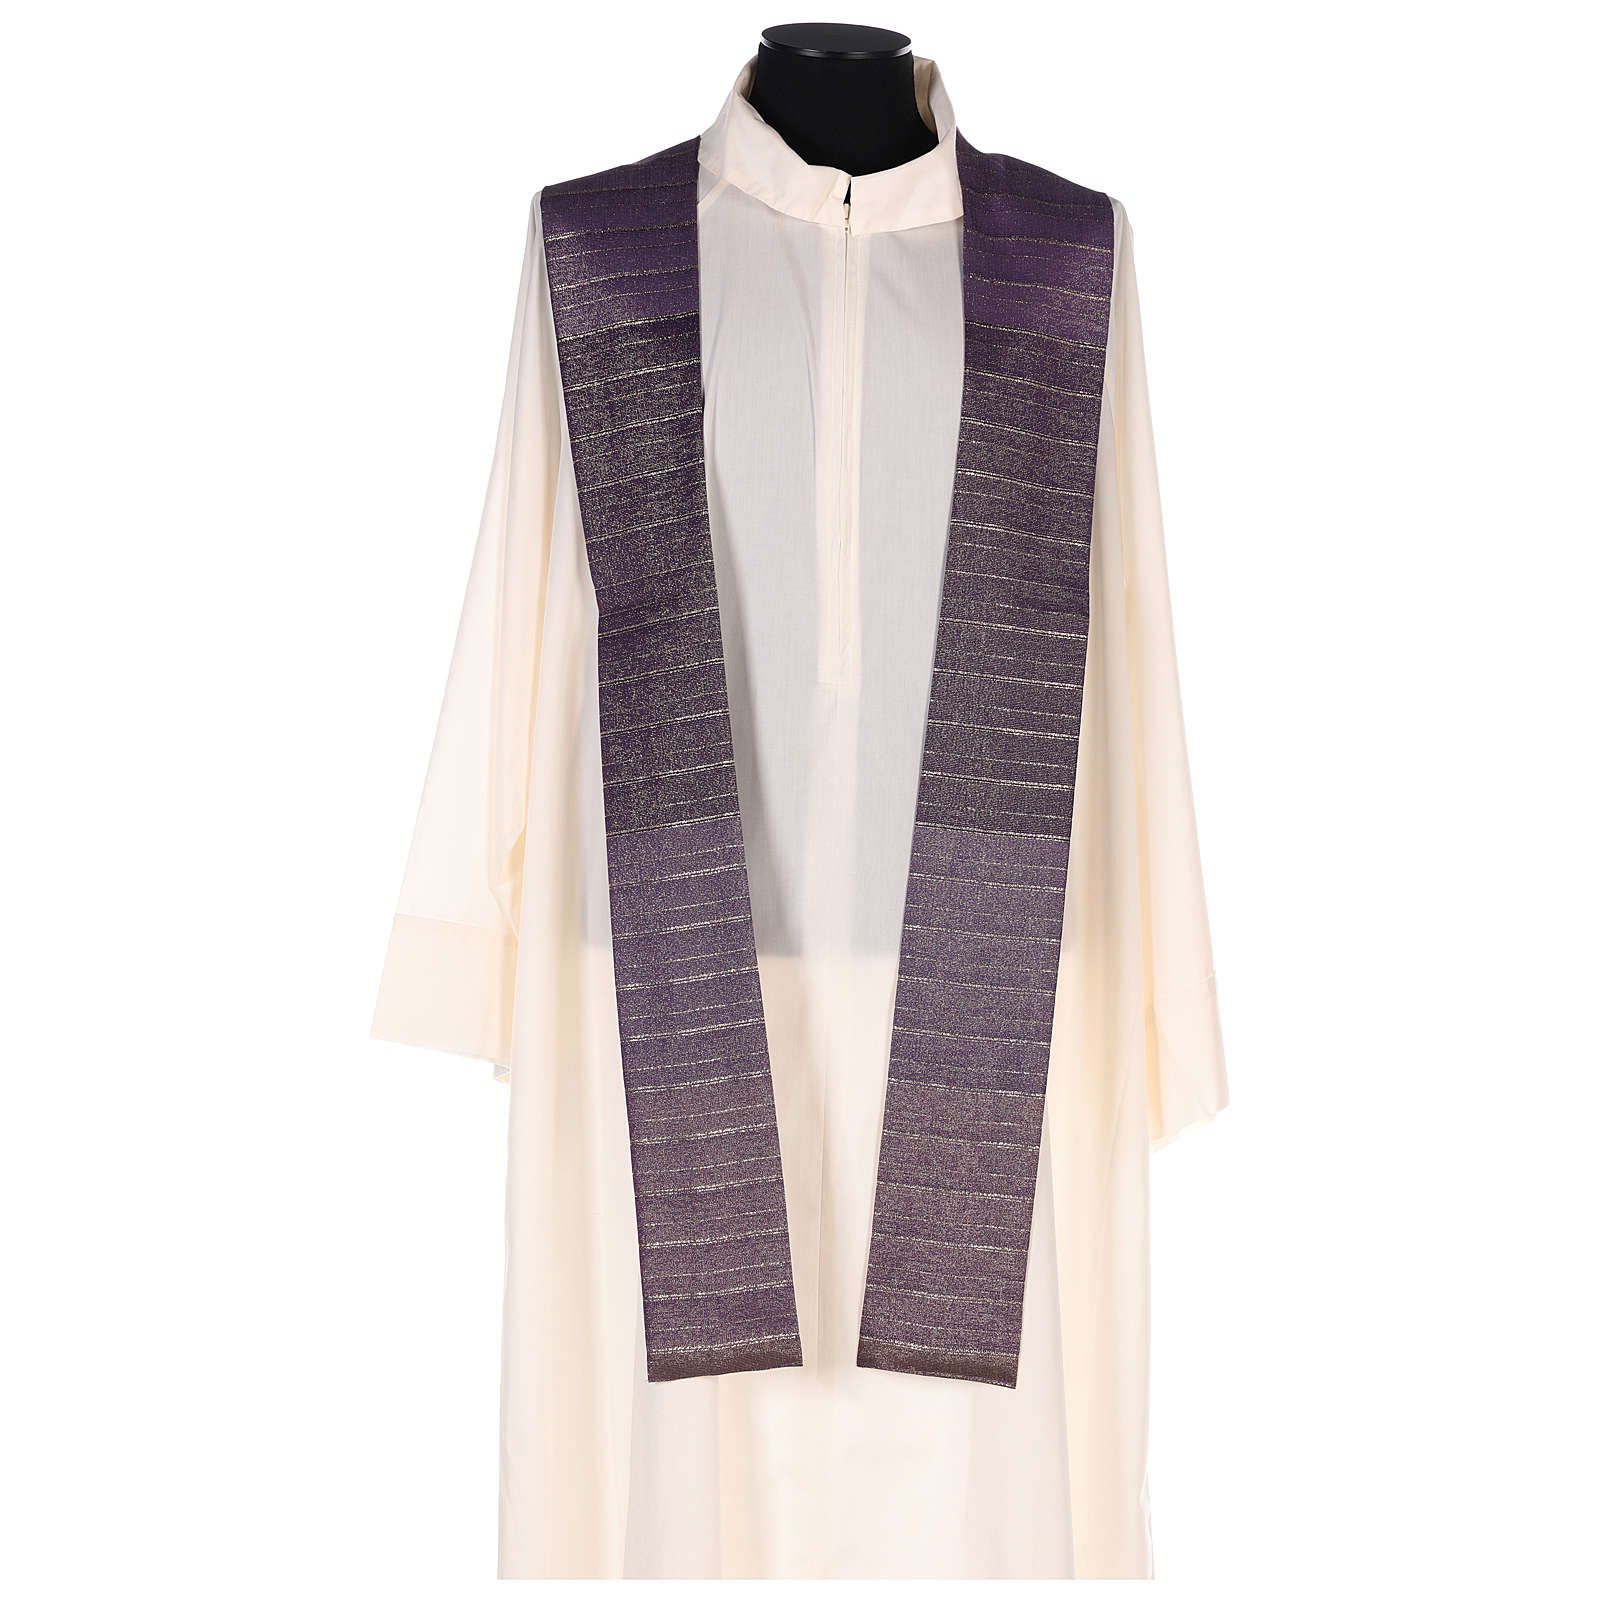 Chasuble in Tasmanian wool with double twisted yarn 4